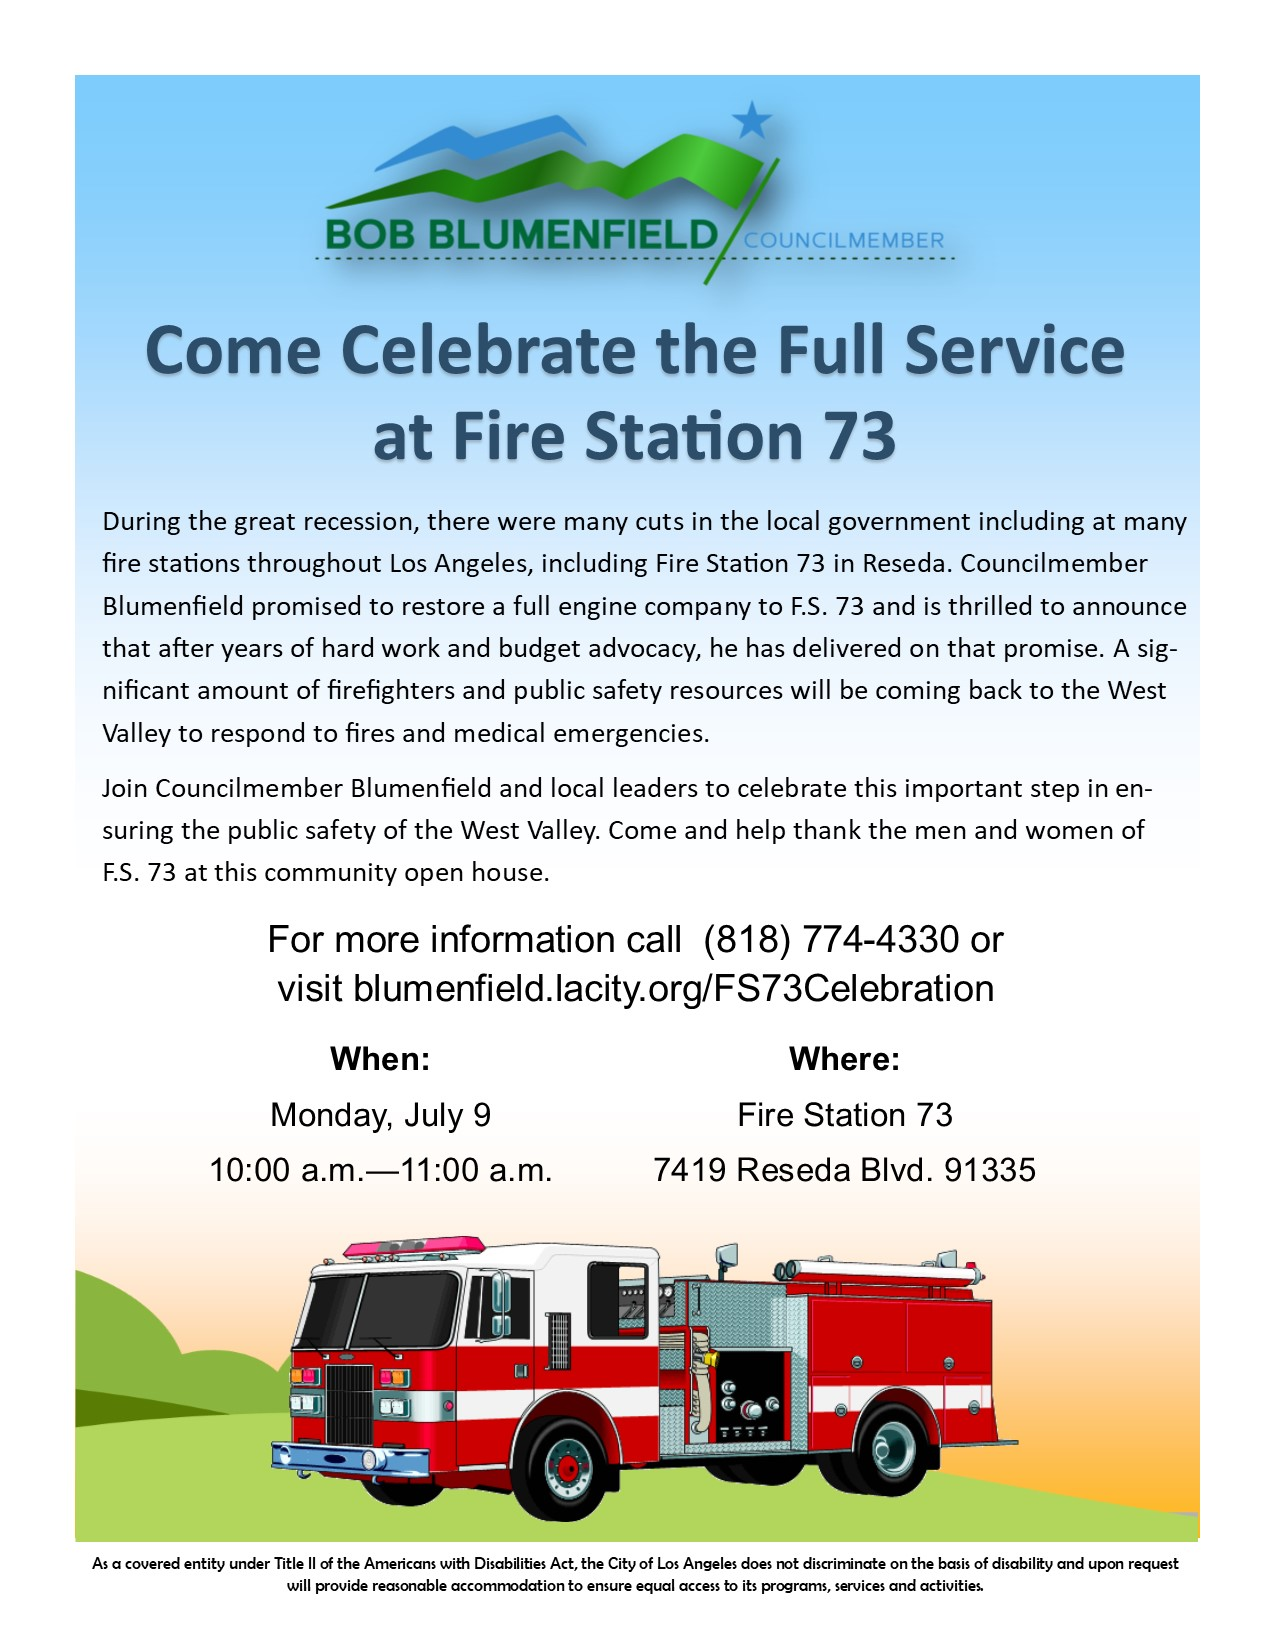 Come_Celebrate_the_Restored_Full_Engine_at_Fire_Station_73.jpg